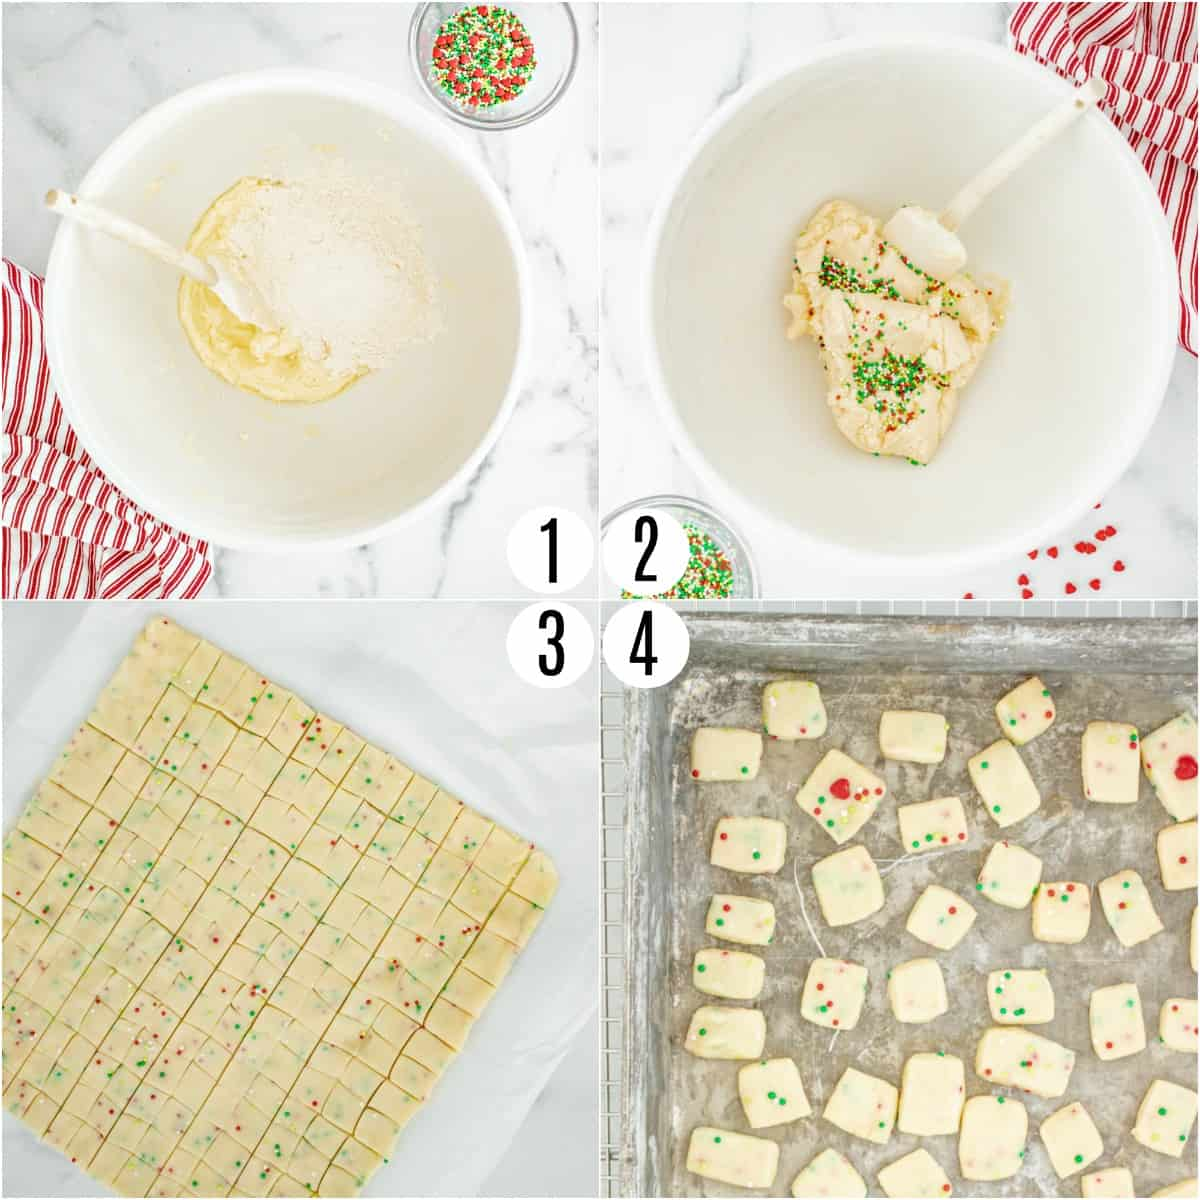 Step by step photos showing how to make shortbread cookie bites.